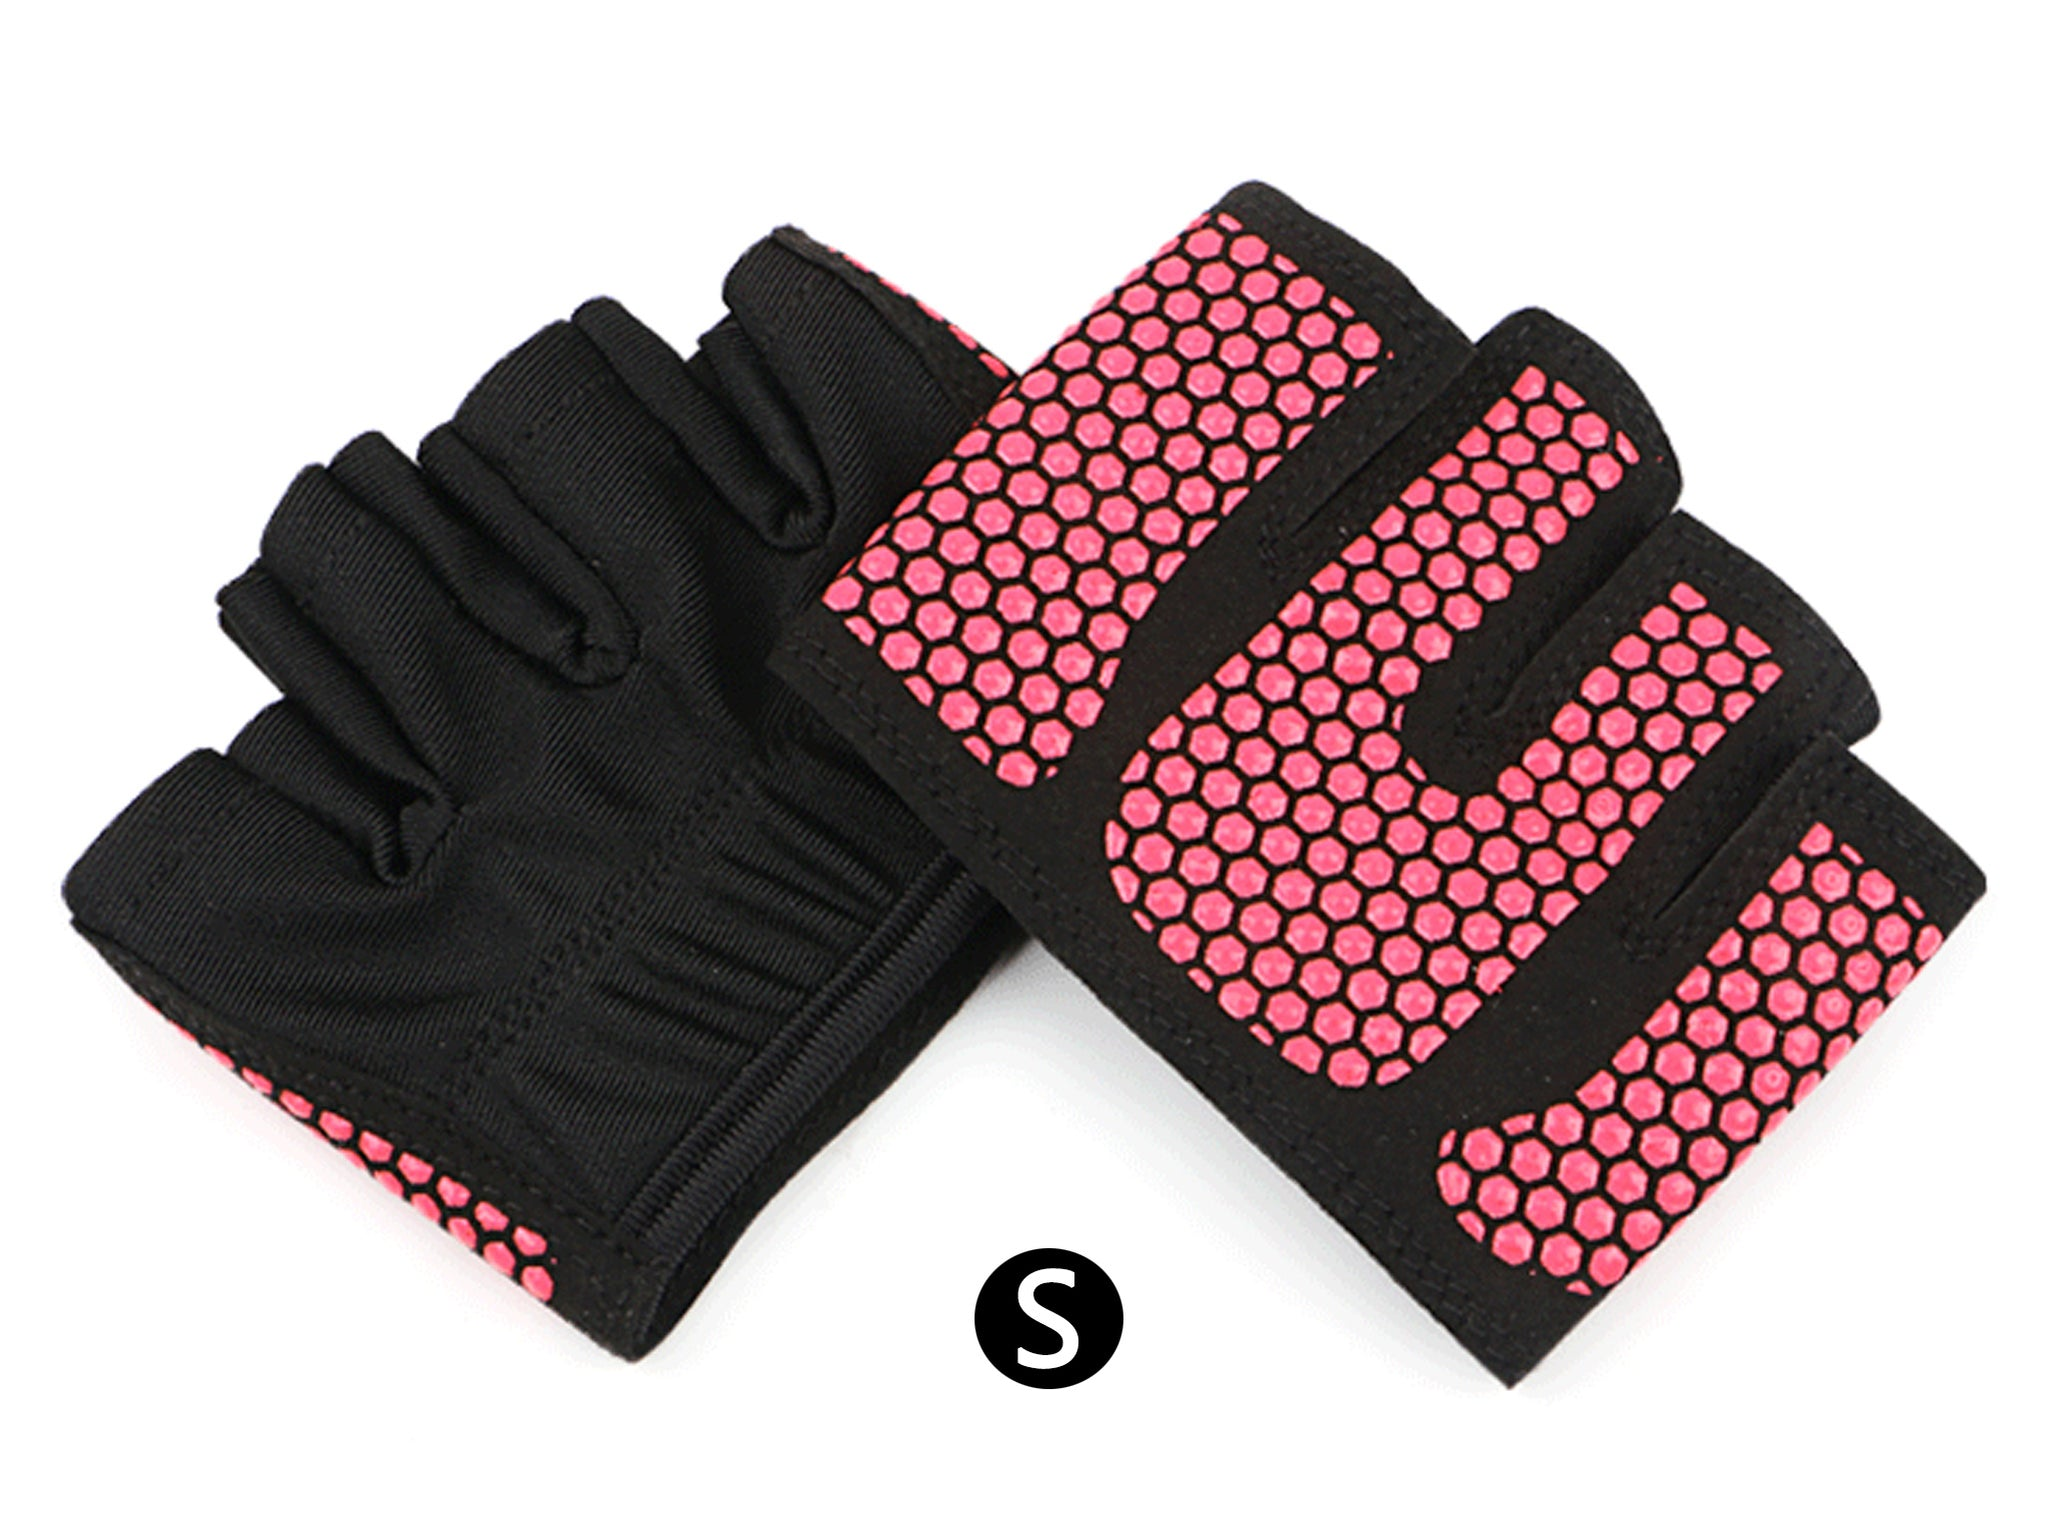 JJMG NEW Non-Slip Super Grippy Yoga Fitness Sports Half Finger Gloves